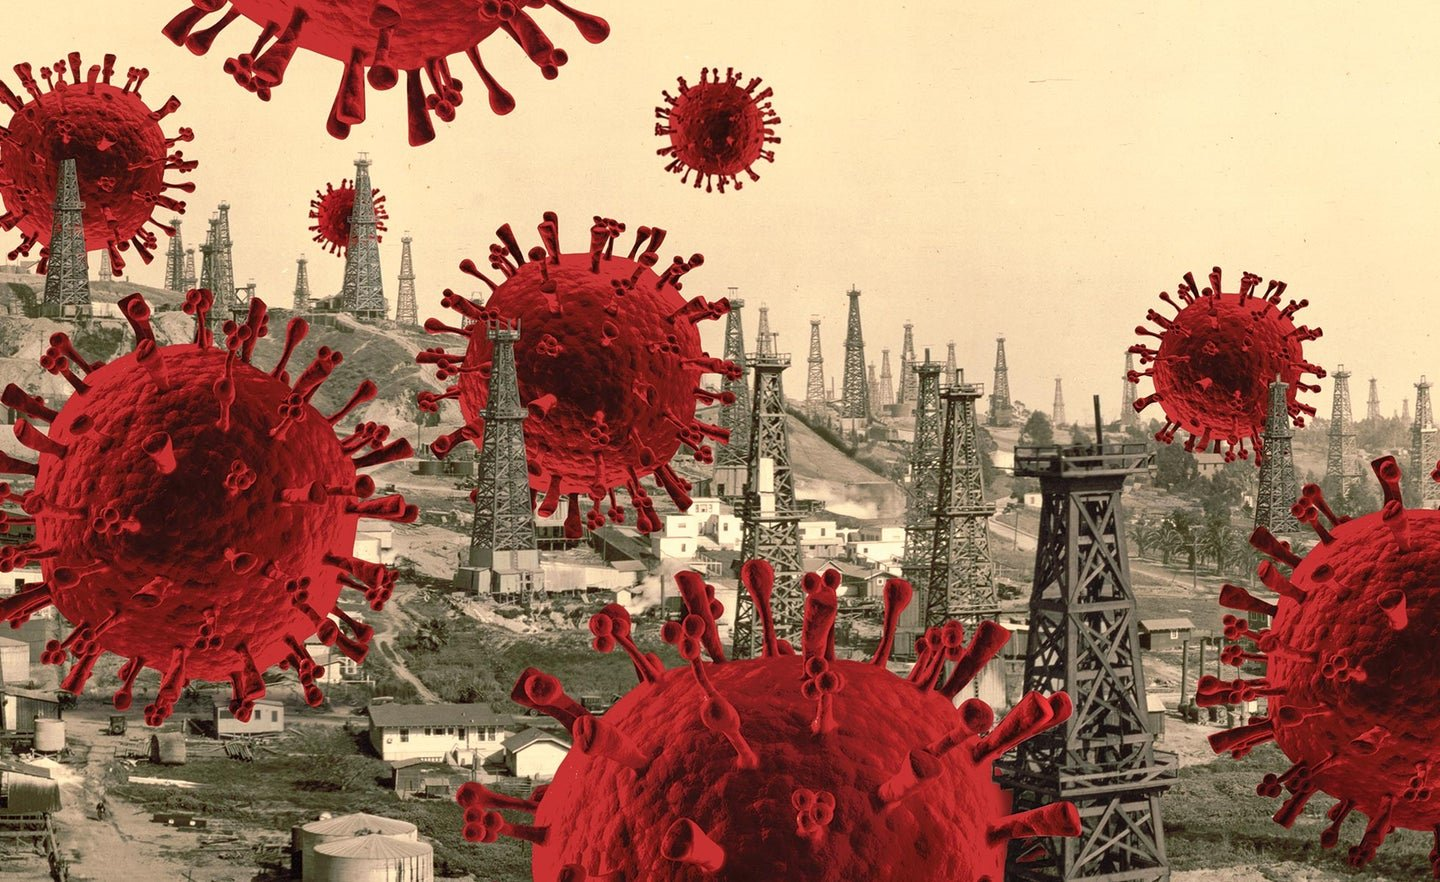 The pandemic could end Texas's oil boom—and start something better